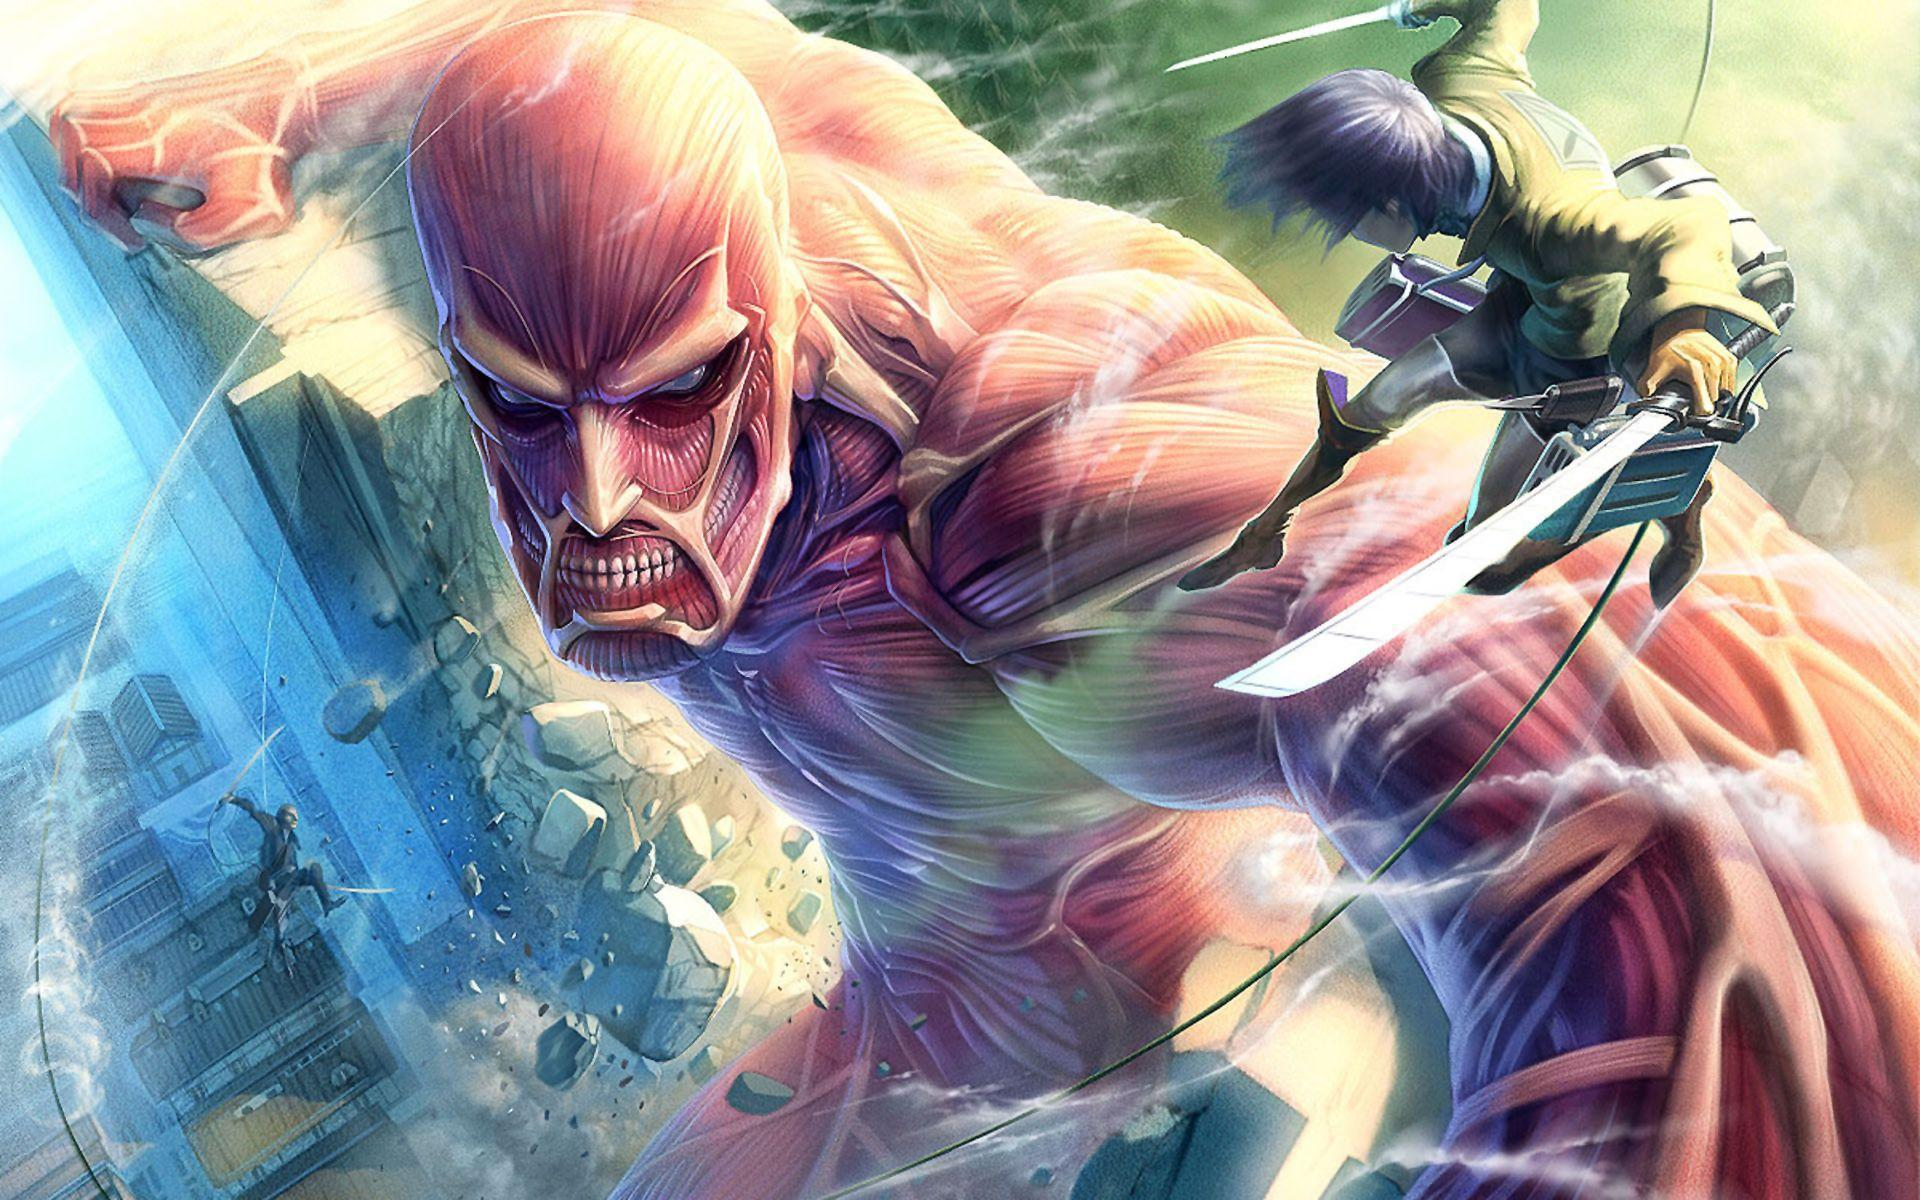 While it's fluid, clean and well draw. Attack On Titan Wallpapers - Wallpaper Cave